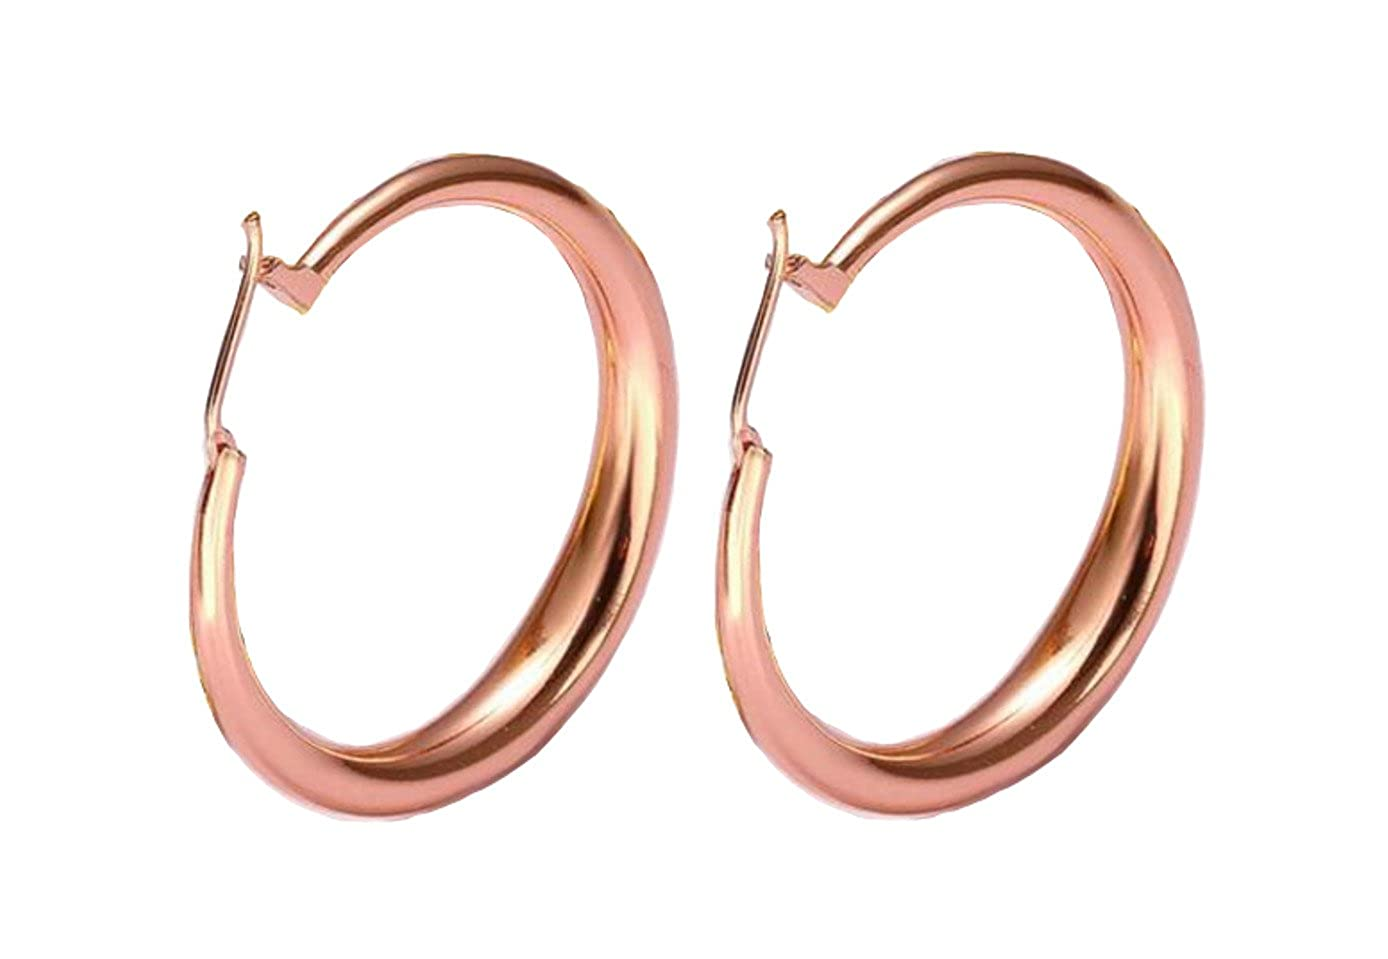 STAYJOY Classic Rose Gold Fashion Crescent Clicktop Hoop Earrings (35mm/1.38